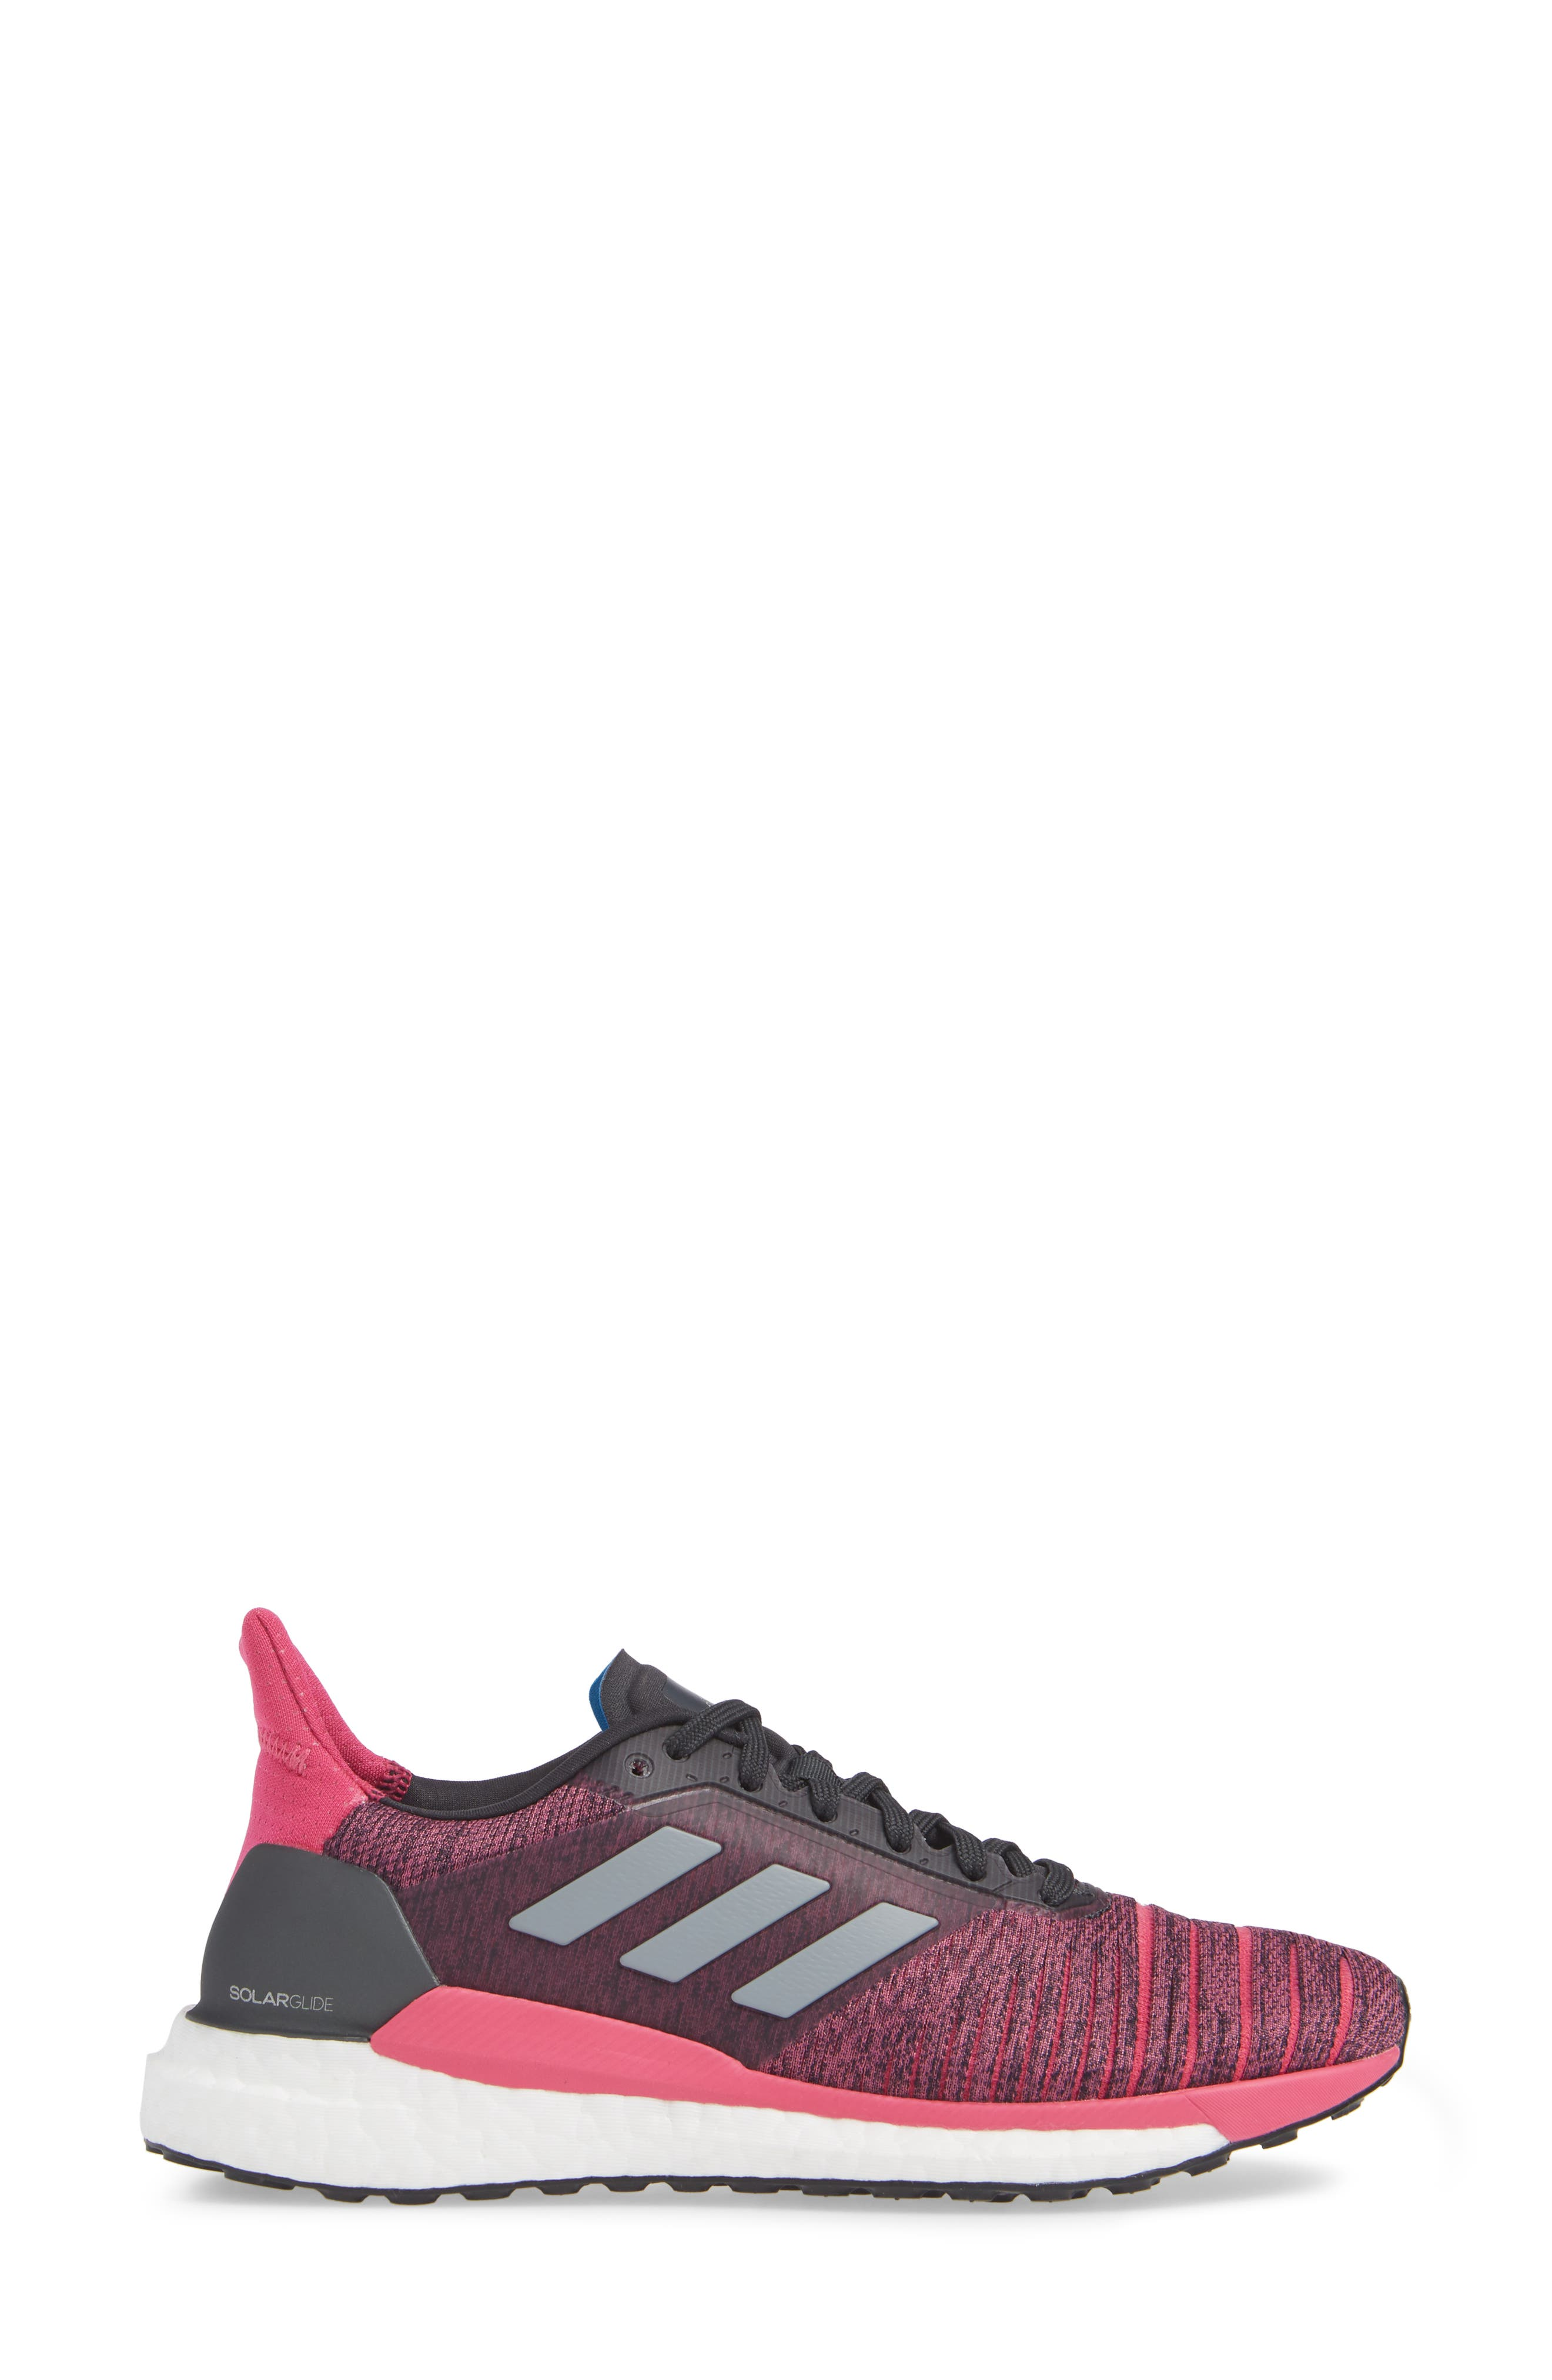 Solar Glide Running Shoe,                             Alternate thumbnail 3, color,                             CARBON/ GREY THREE/ MAGENTA